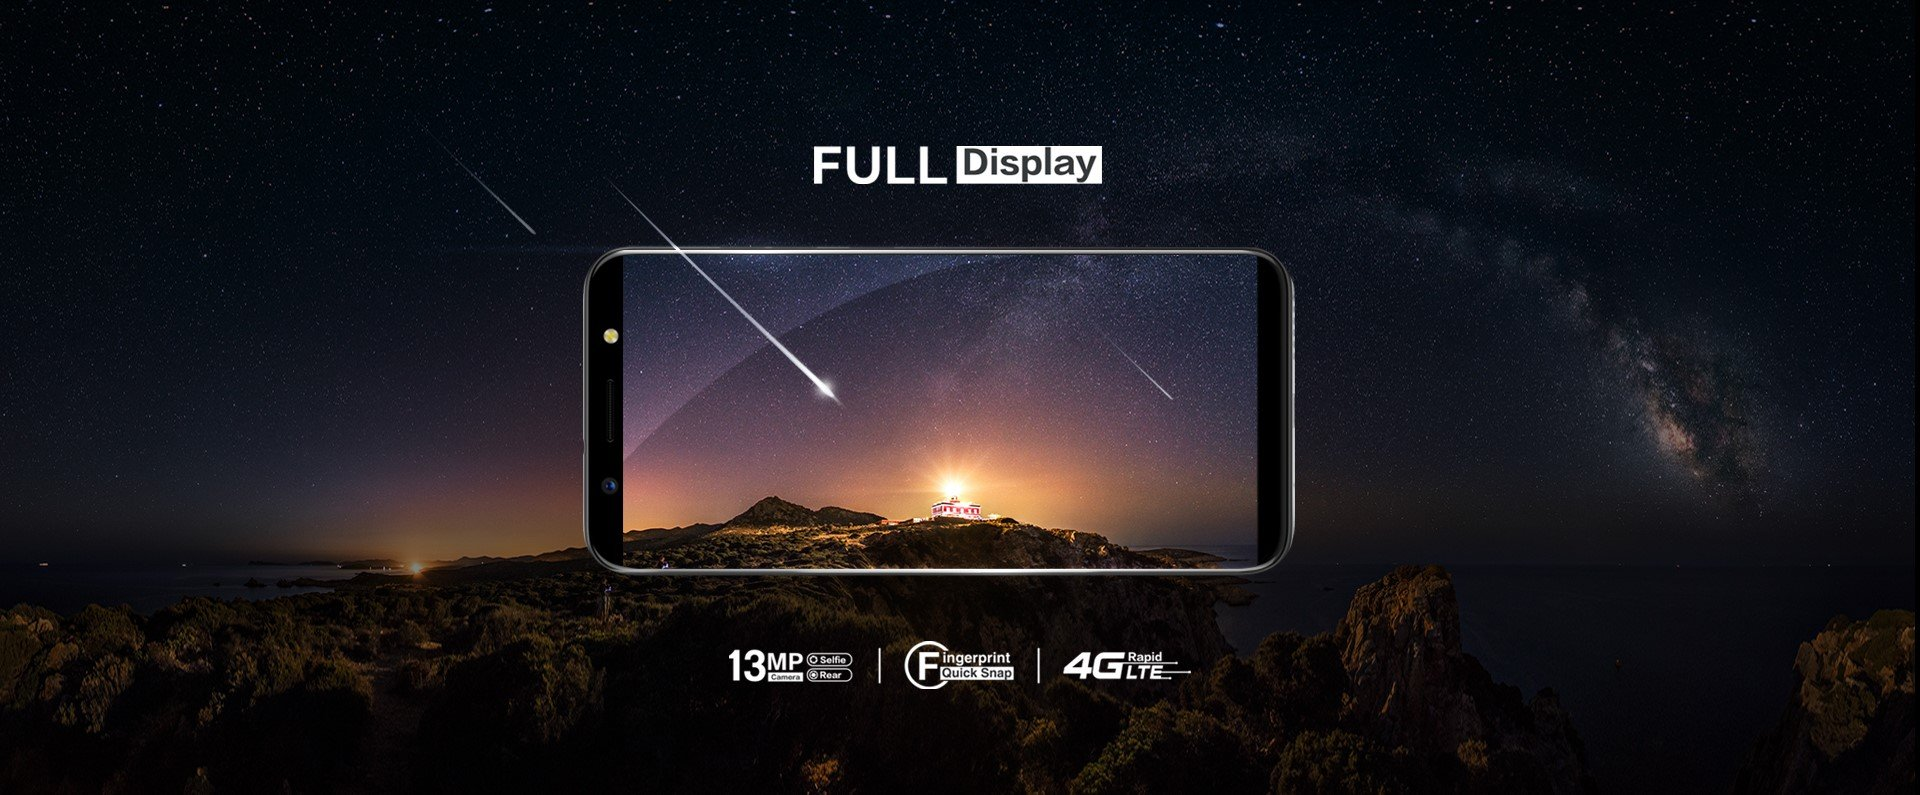 The Tecno Camon CM will capture spectacular images even in dark